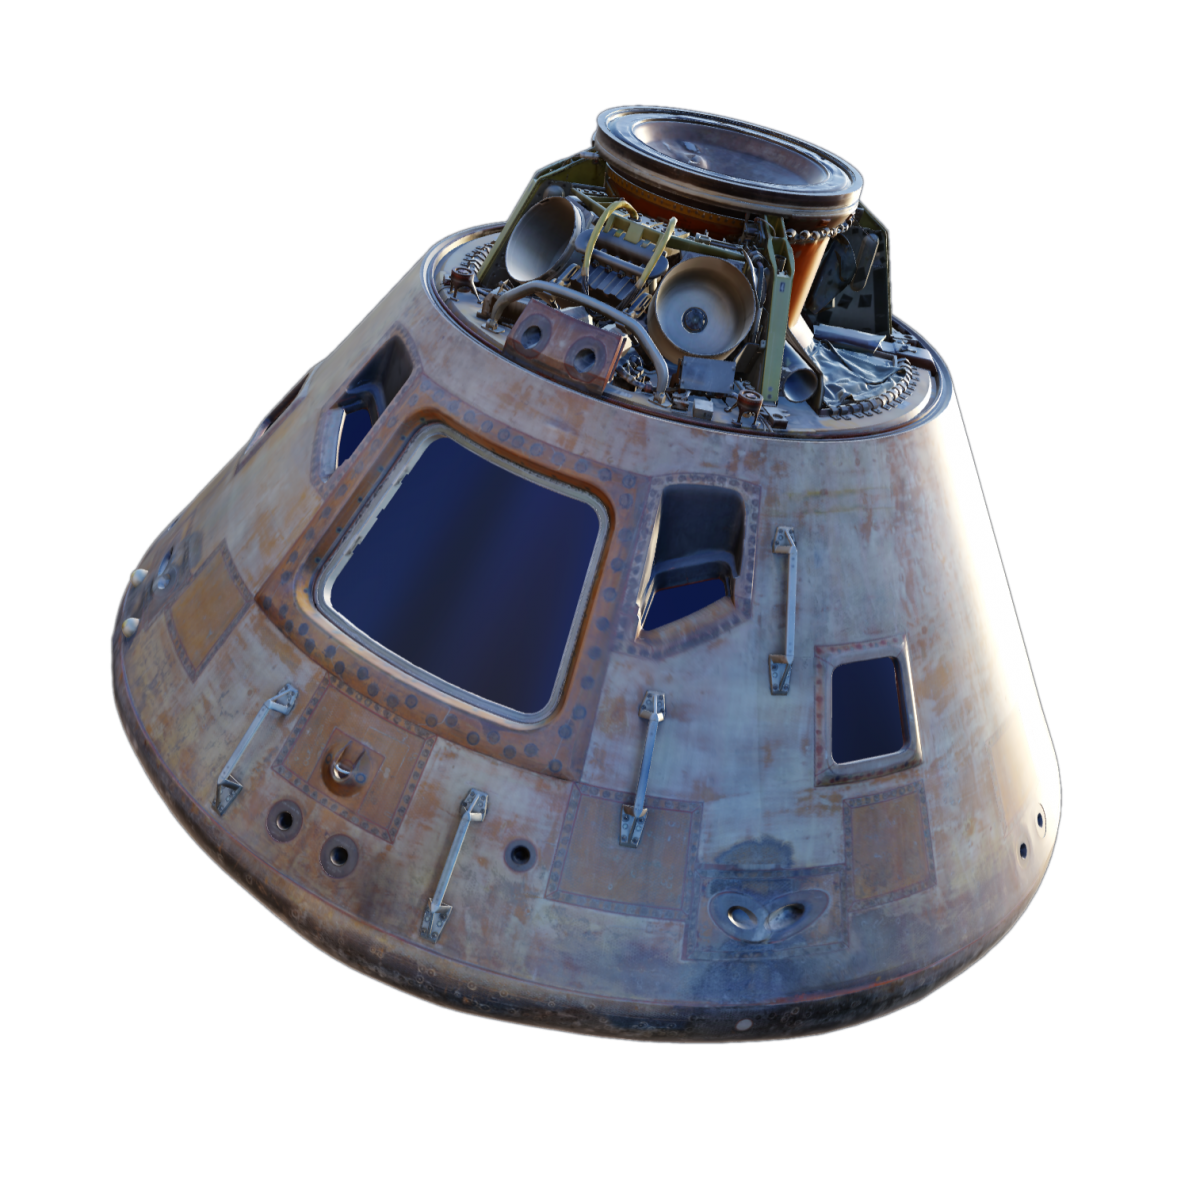 Apollo Command Module 3D scan